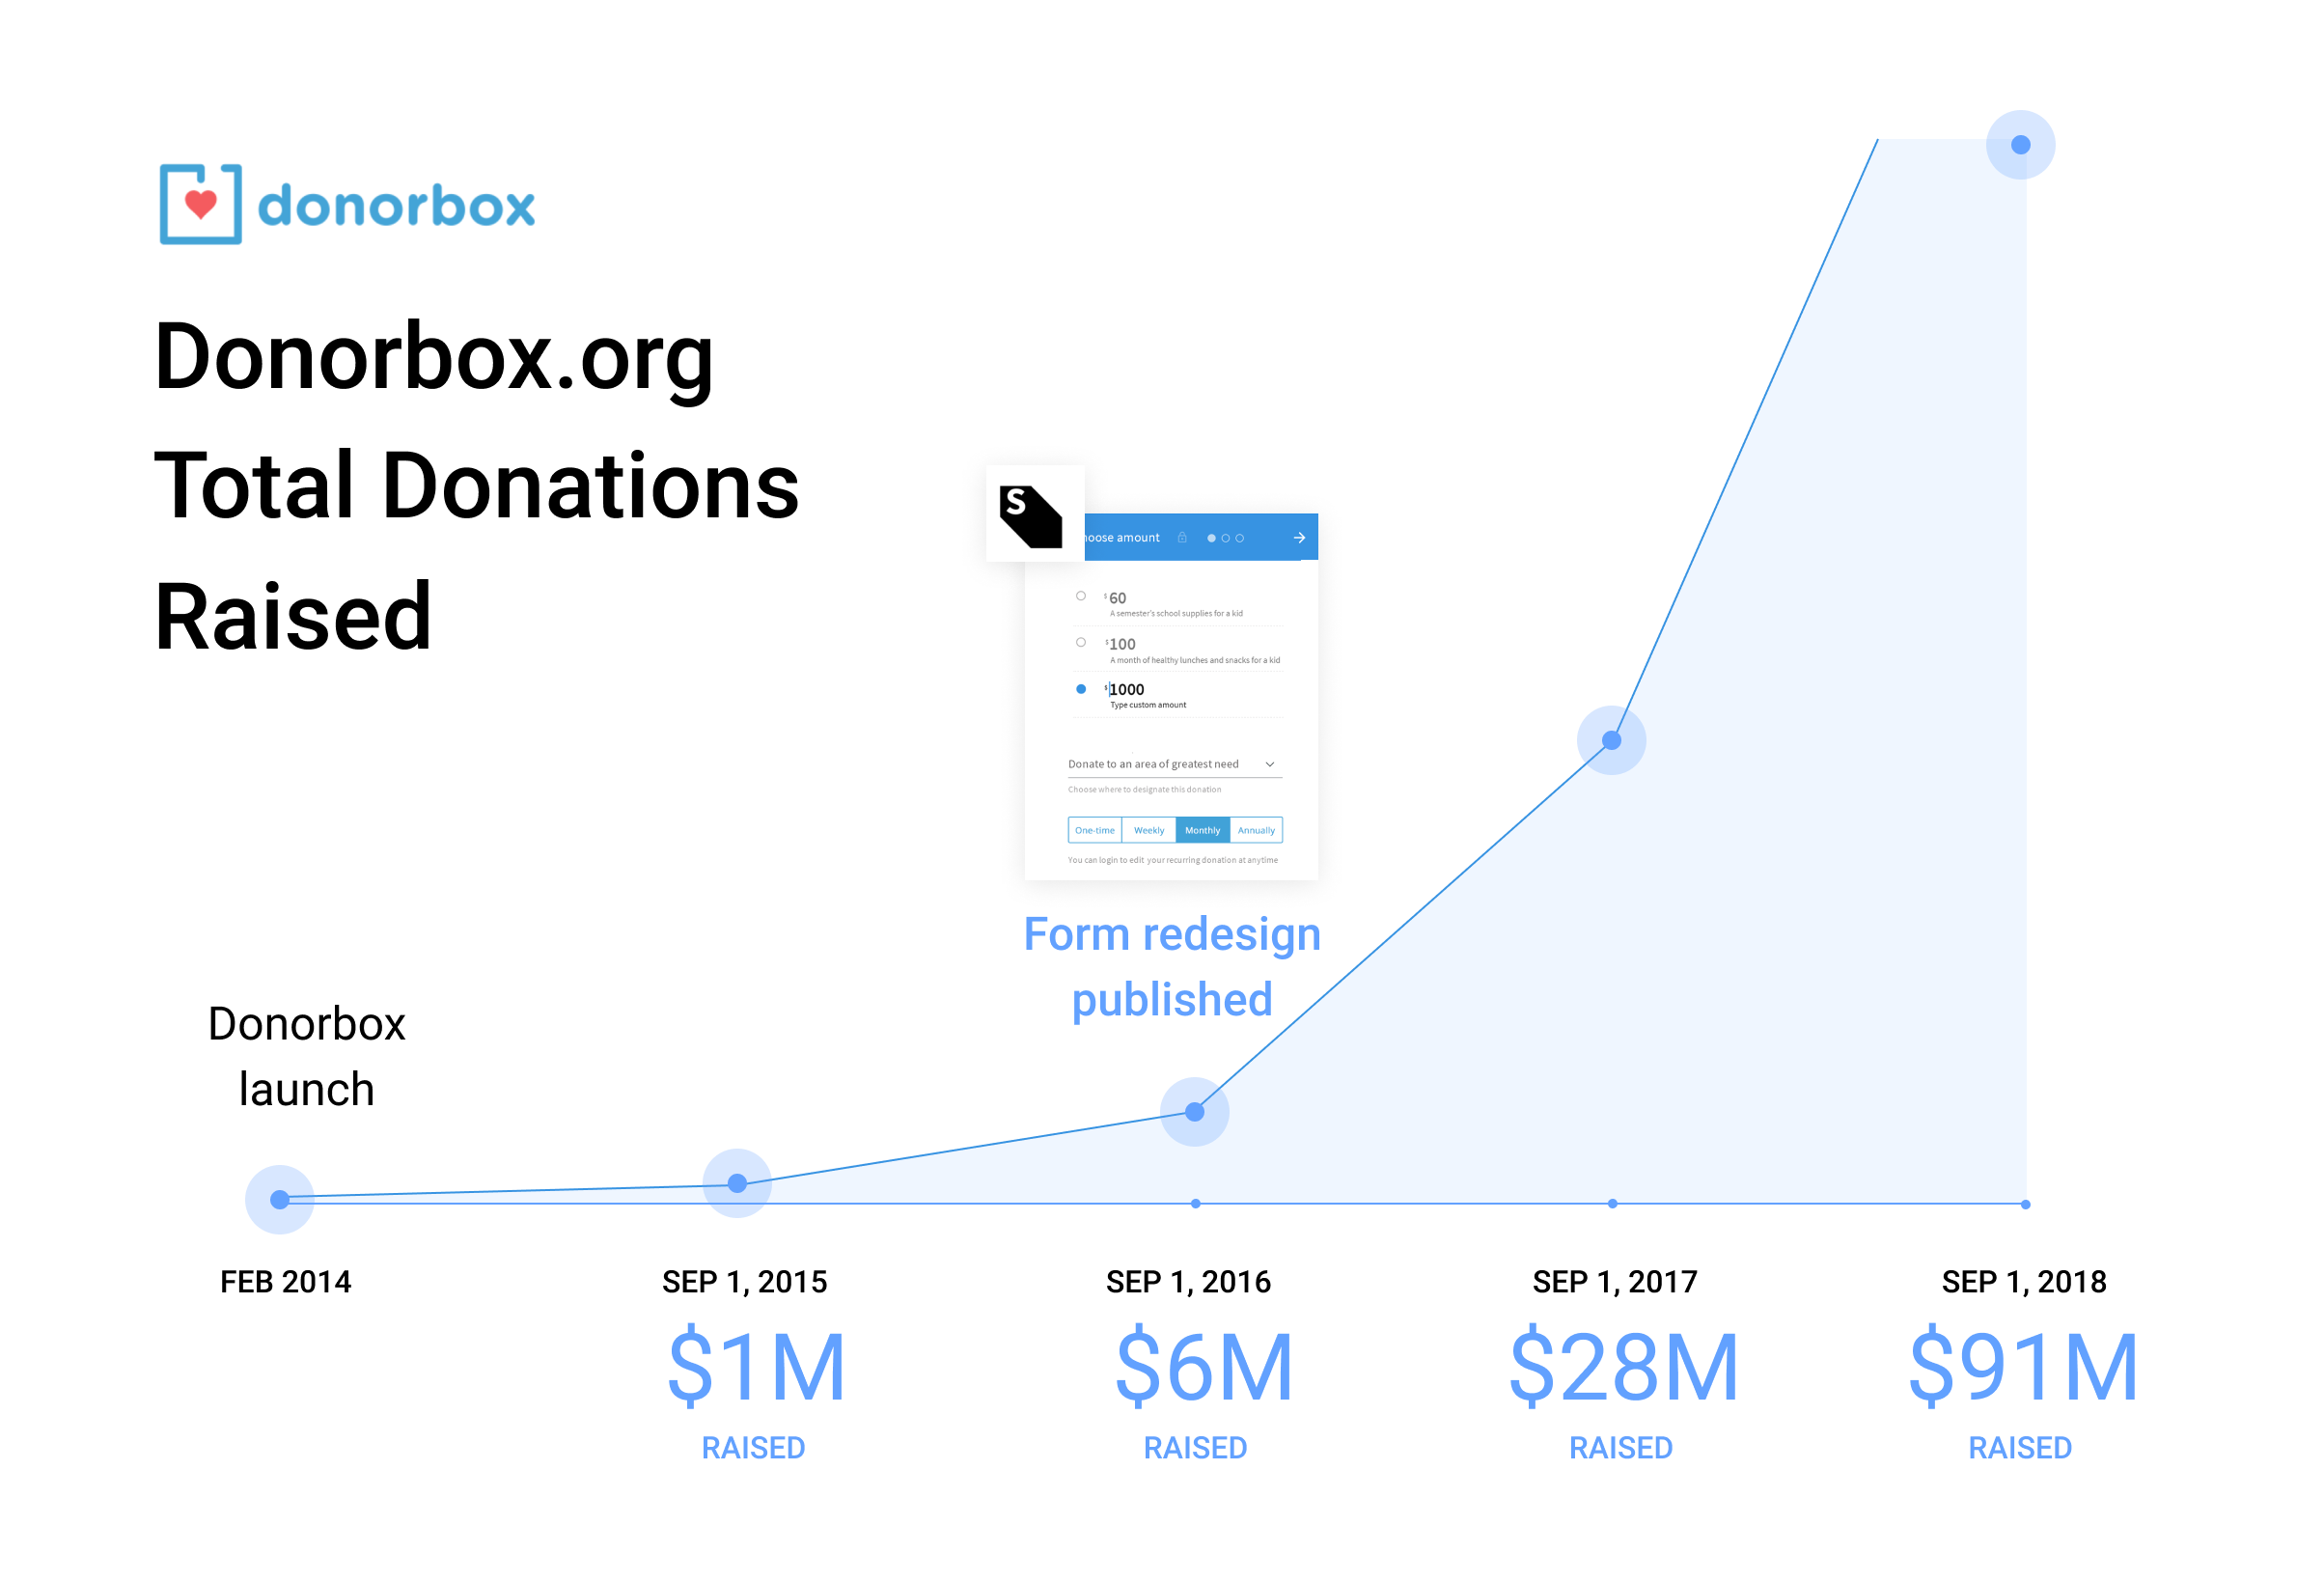 donorbox-raised@2x.png